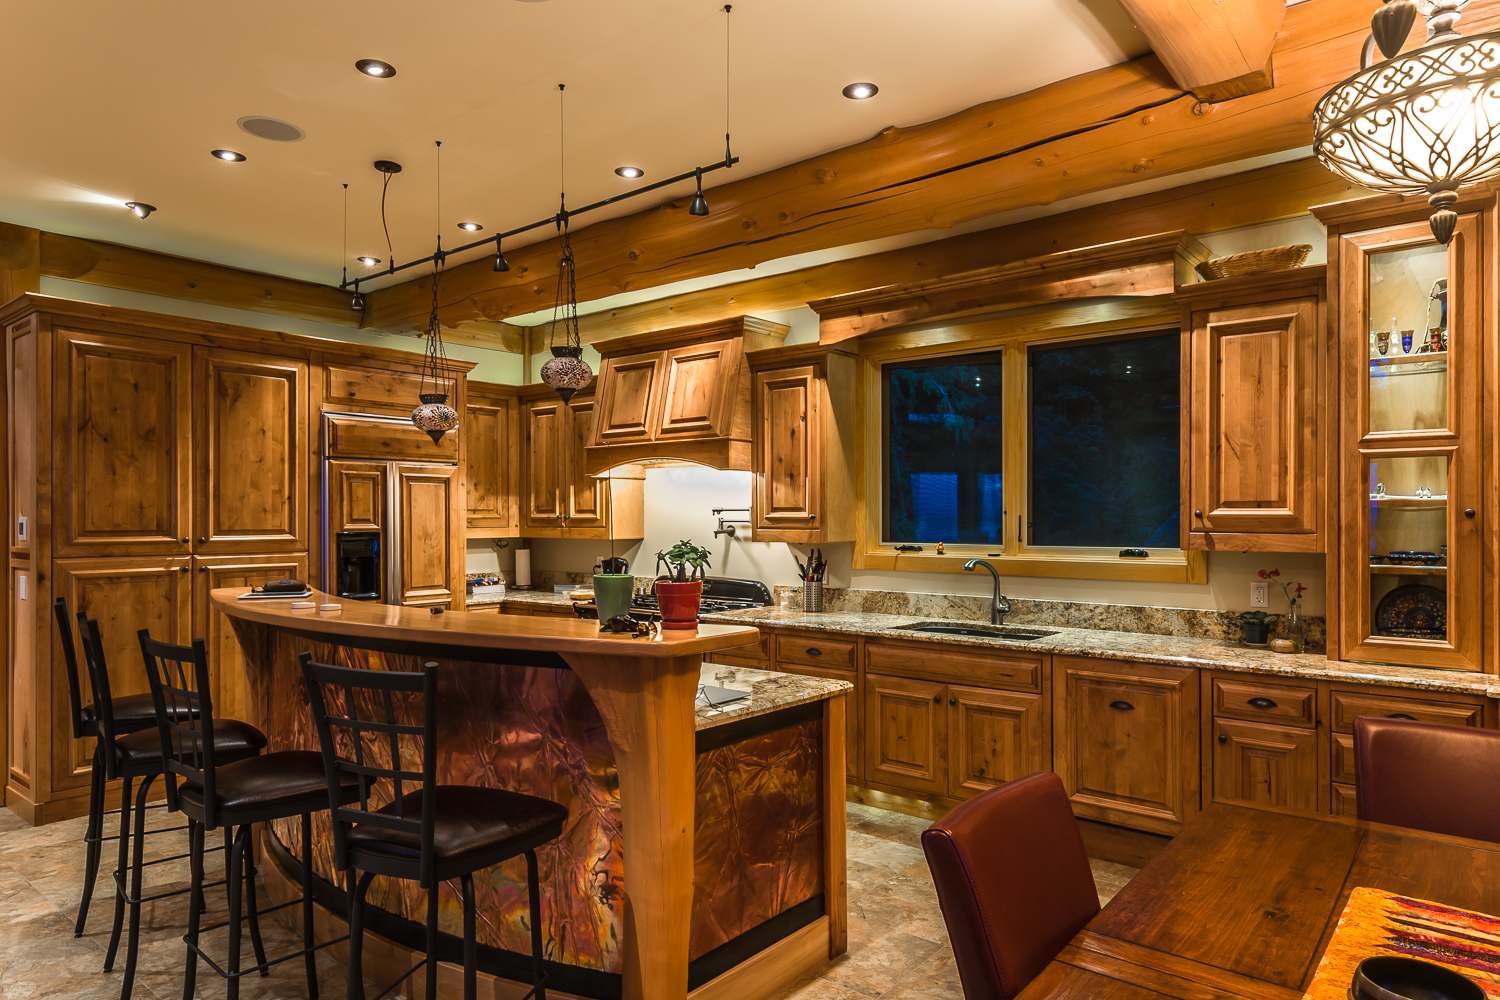 Log home kitchen the home touches Home kitchen